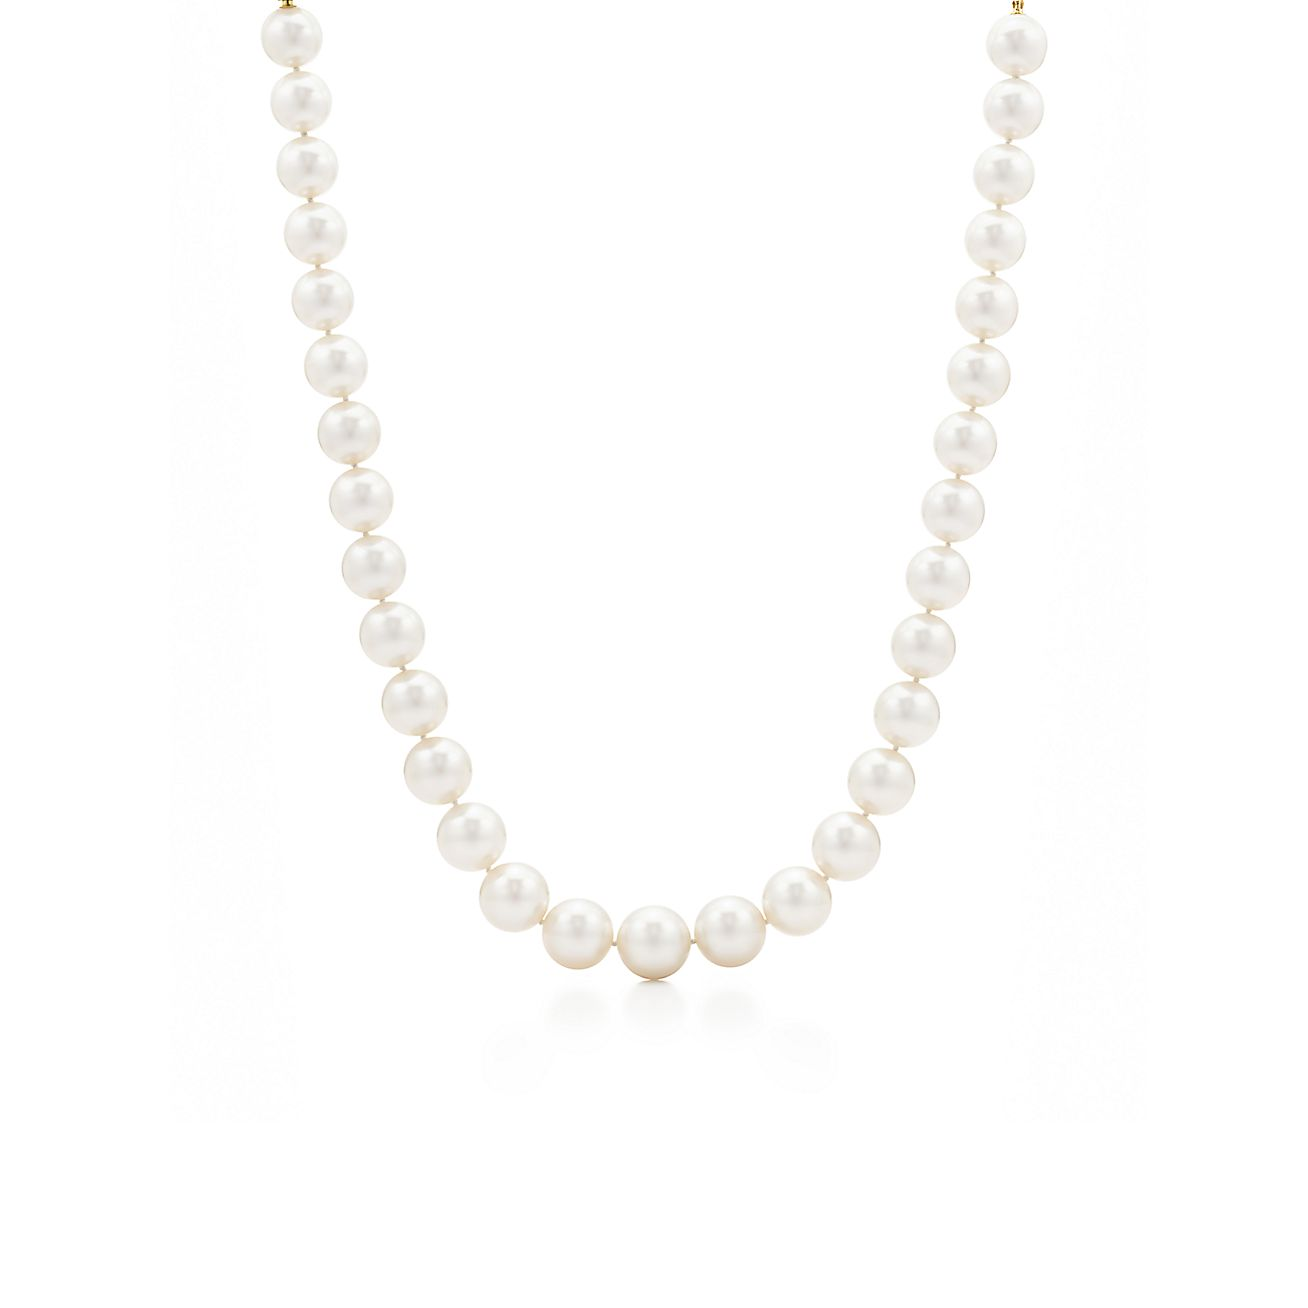 Tiffany South Sea:Pearl Necklace